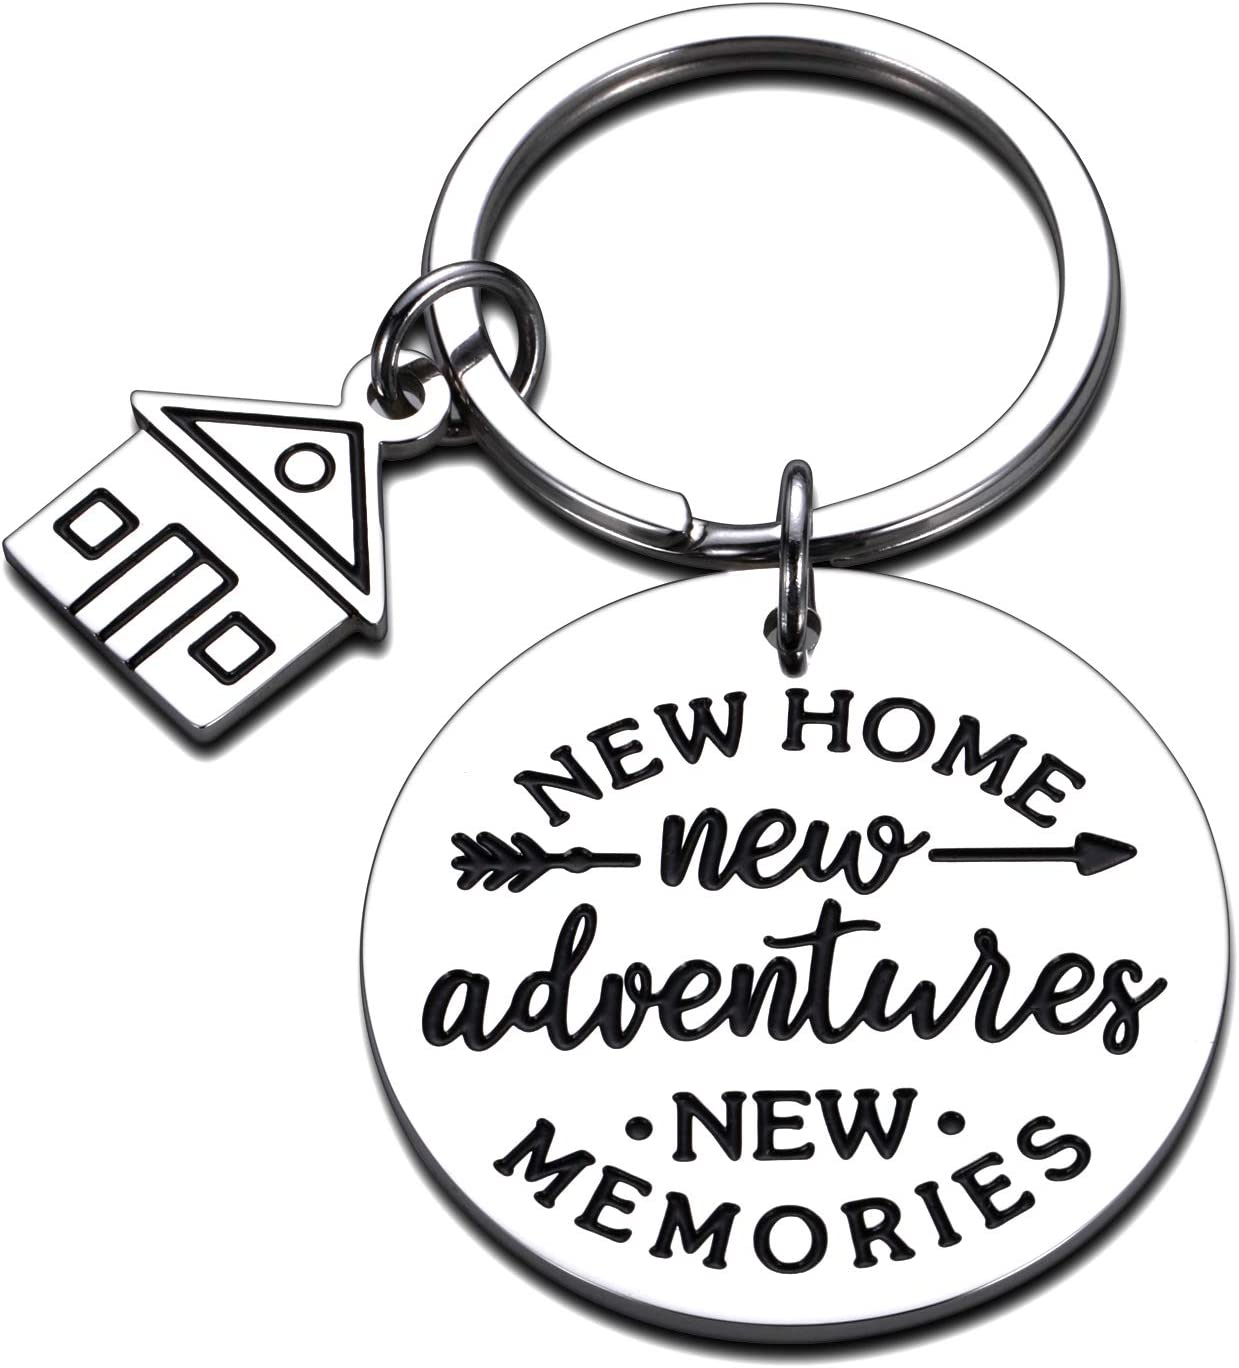 New Home Keychains Gifts for Home Apartment Housewarming Gifts House Warming Presents for Homeowner Women Men New Home New Adventures New Memories Moving Away Jewelry Real Estate Agent Realtor Gift